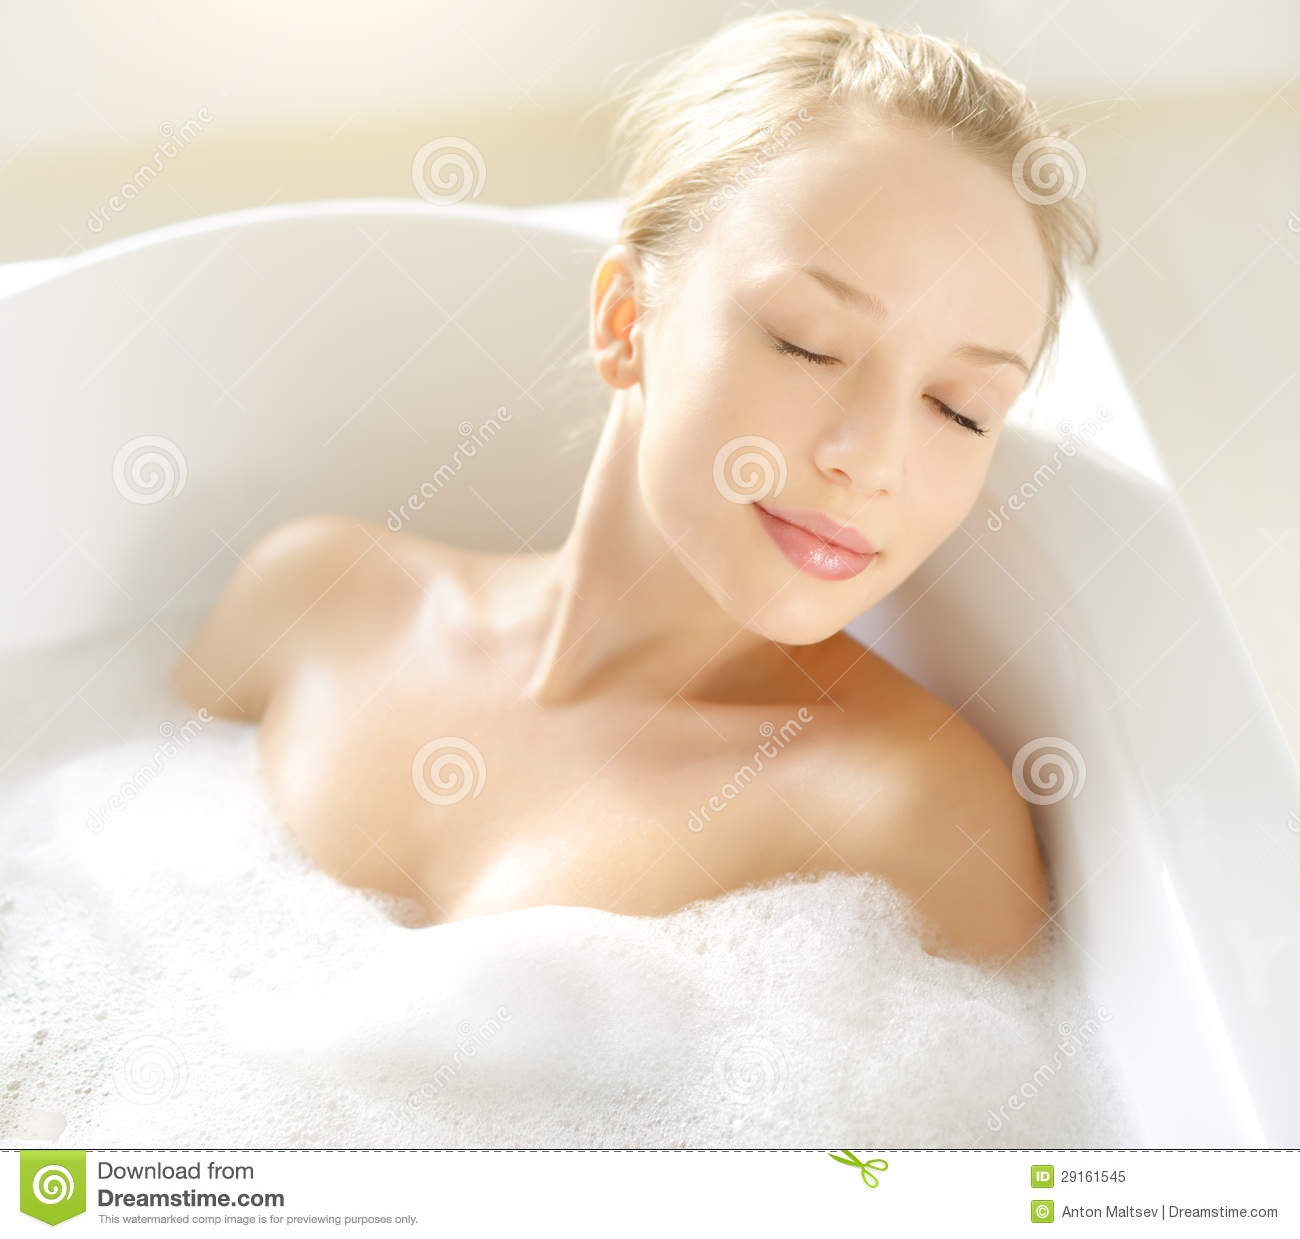 Bathroom Pic Girl: Attractive Girl Relaxing In Bath Royalty Free Stock Photo